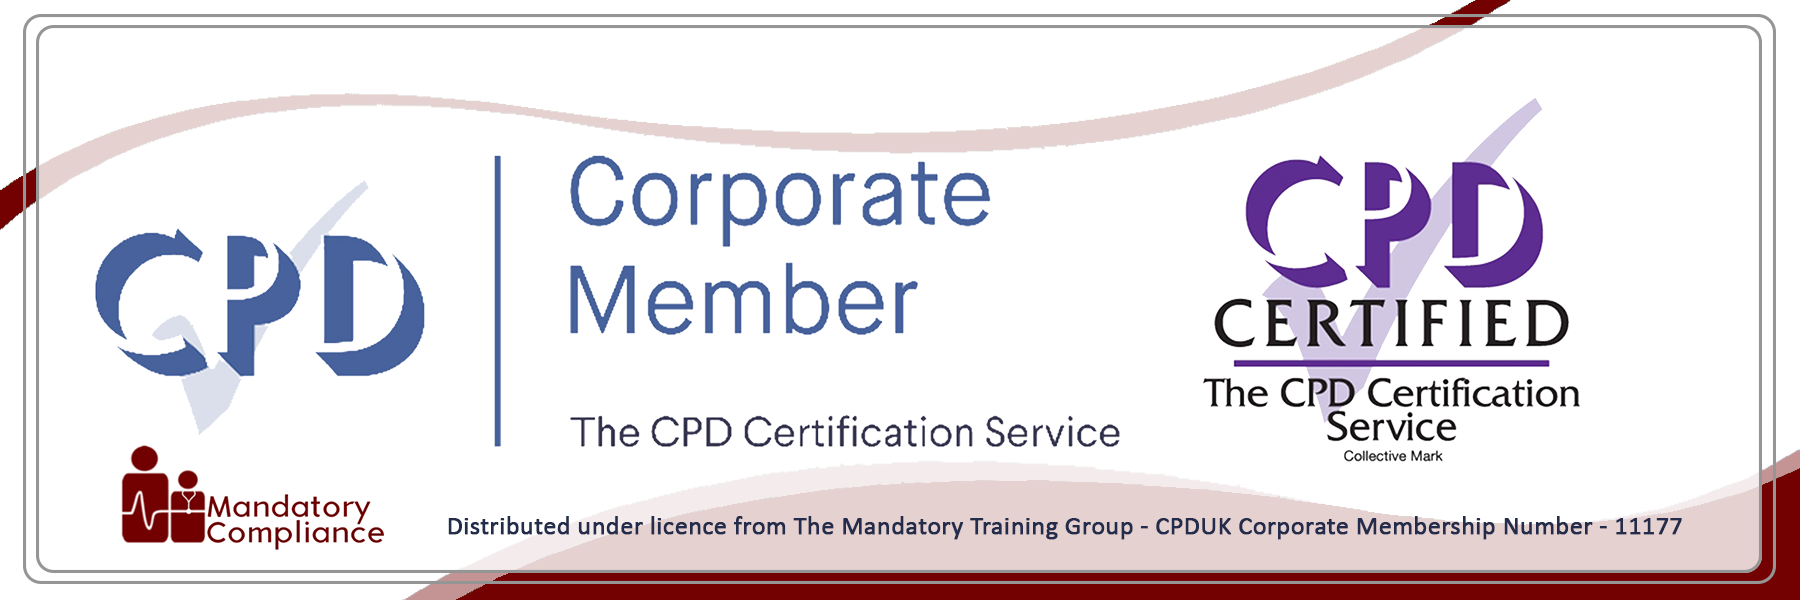 Safeguarding Children - Online Training Course - CPD Accredited - Mandatory Compliance UK -